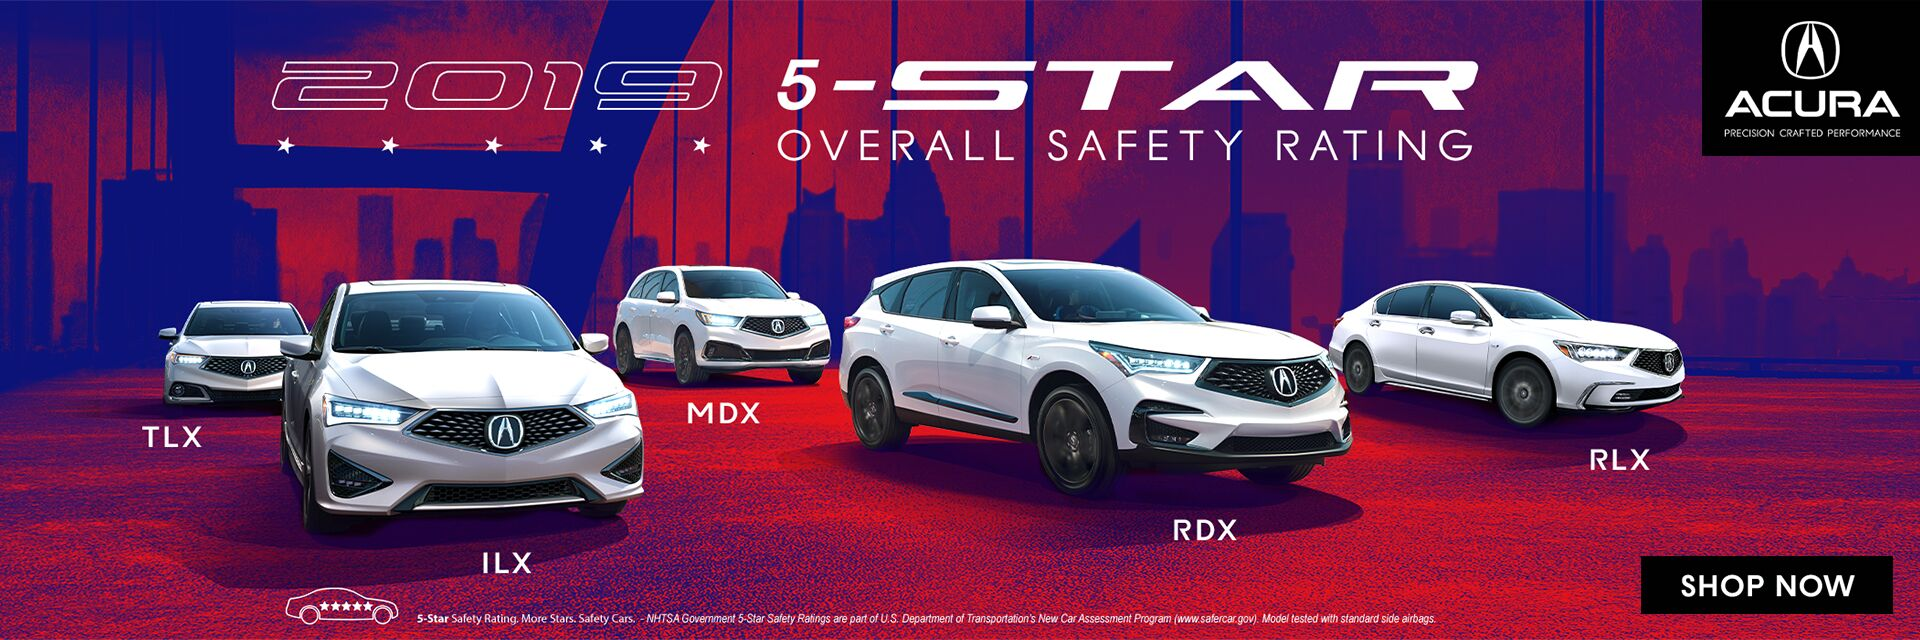 1920x640_19039_Acura_2019 Accolade Assets_CTROT_LINEUP